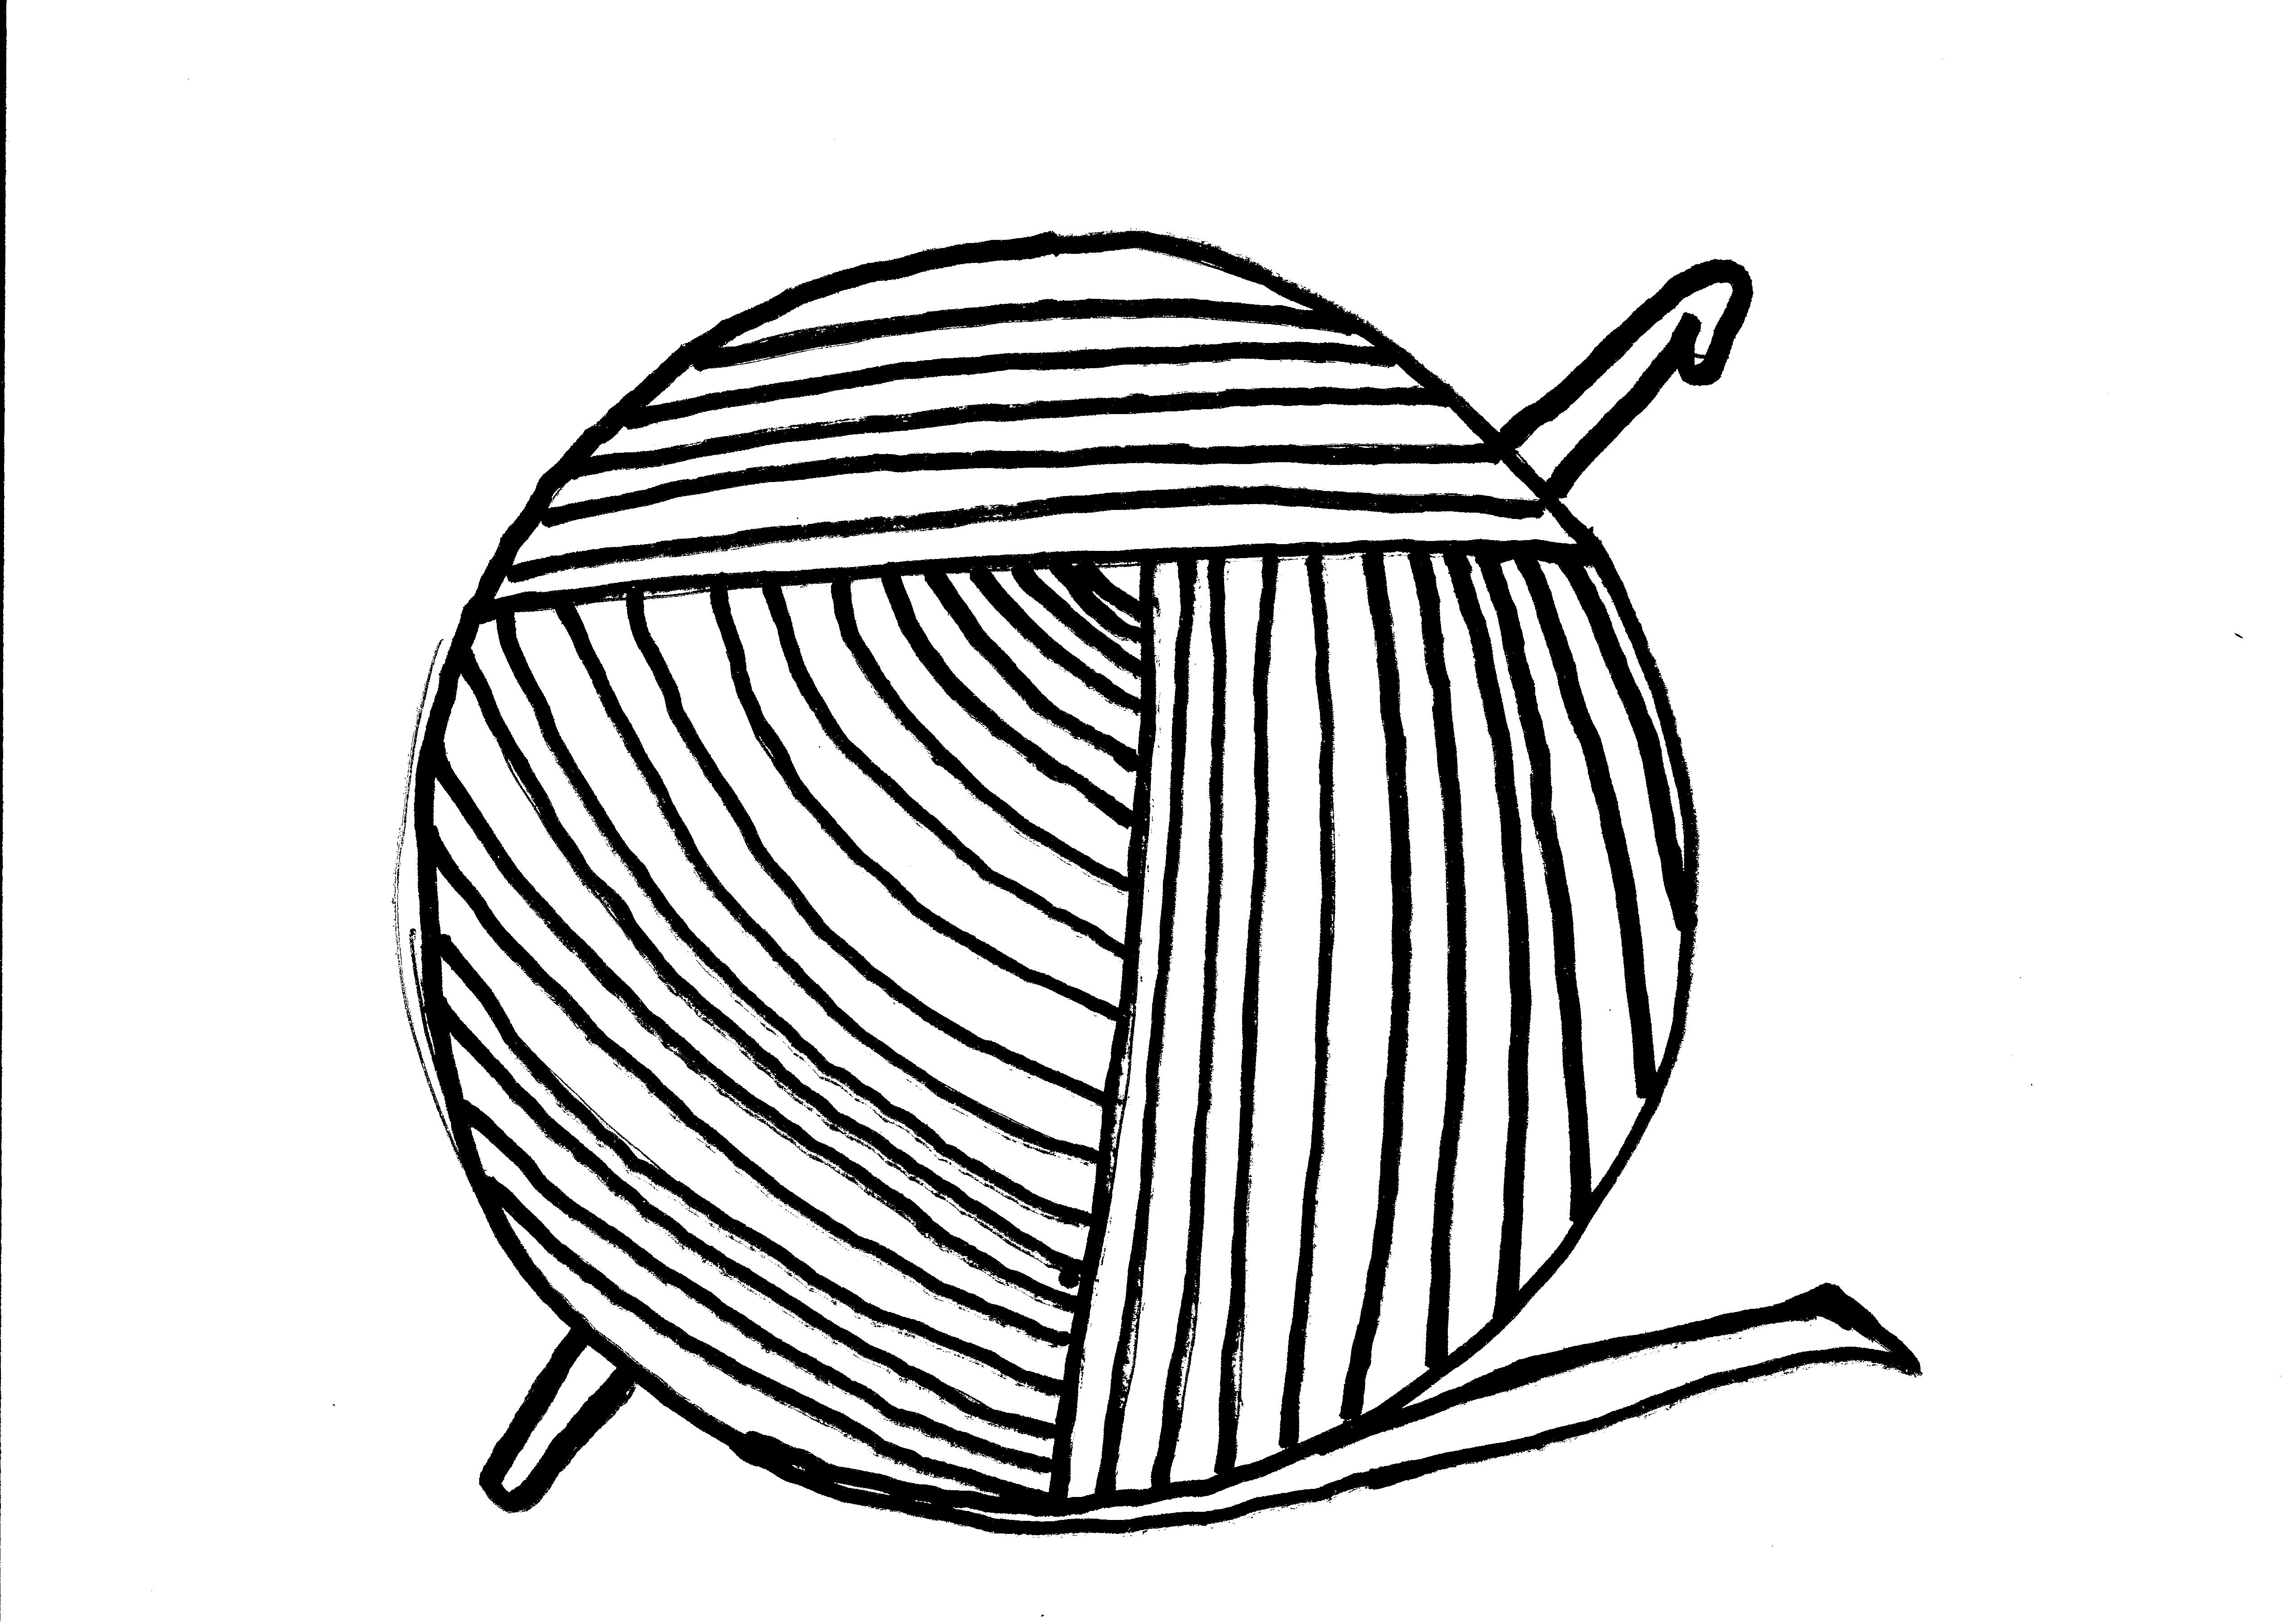 Yarn ball and crochet hook free image